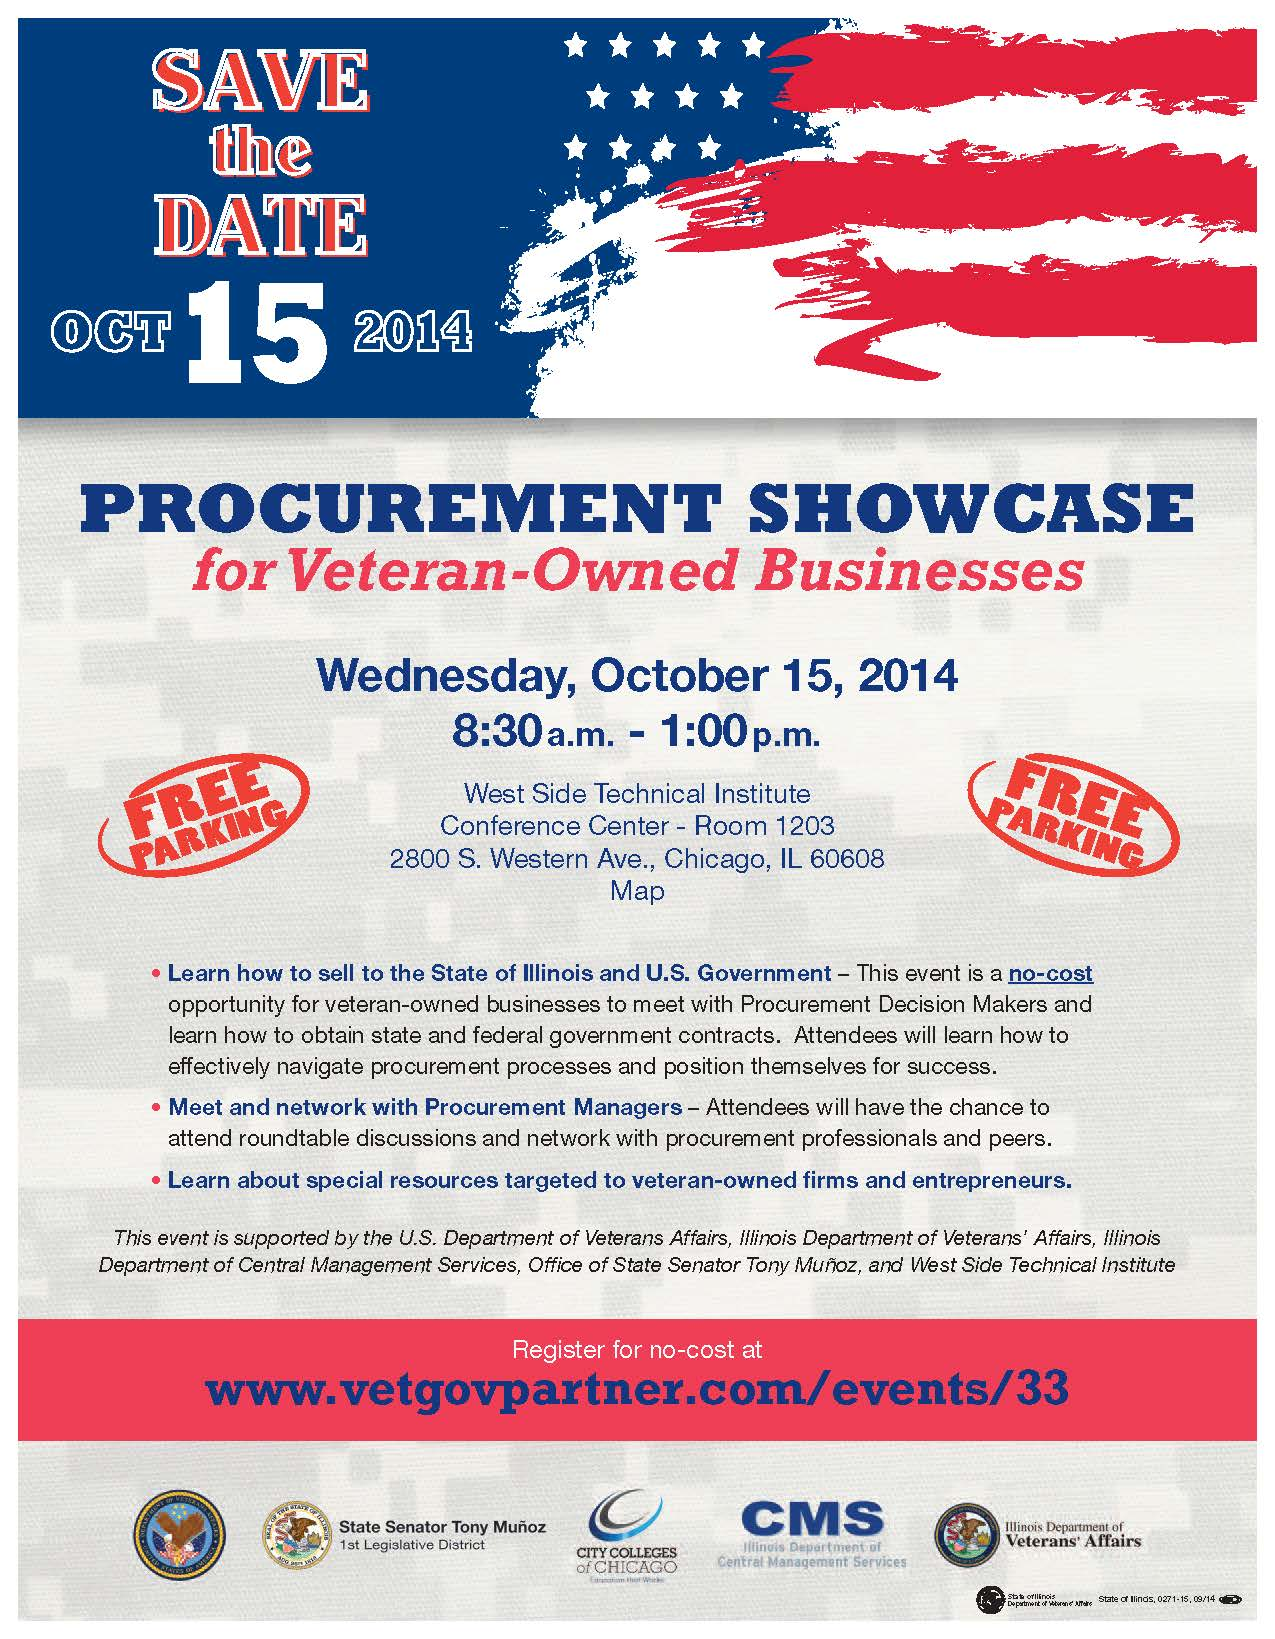 Procurement Showcase for Veteran-Owned Busineses - Oct  15 in Chicago